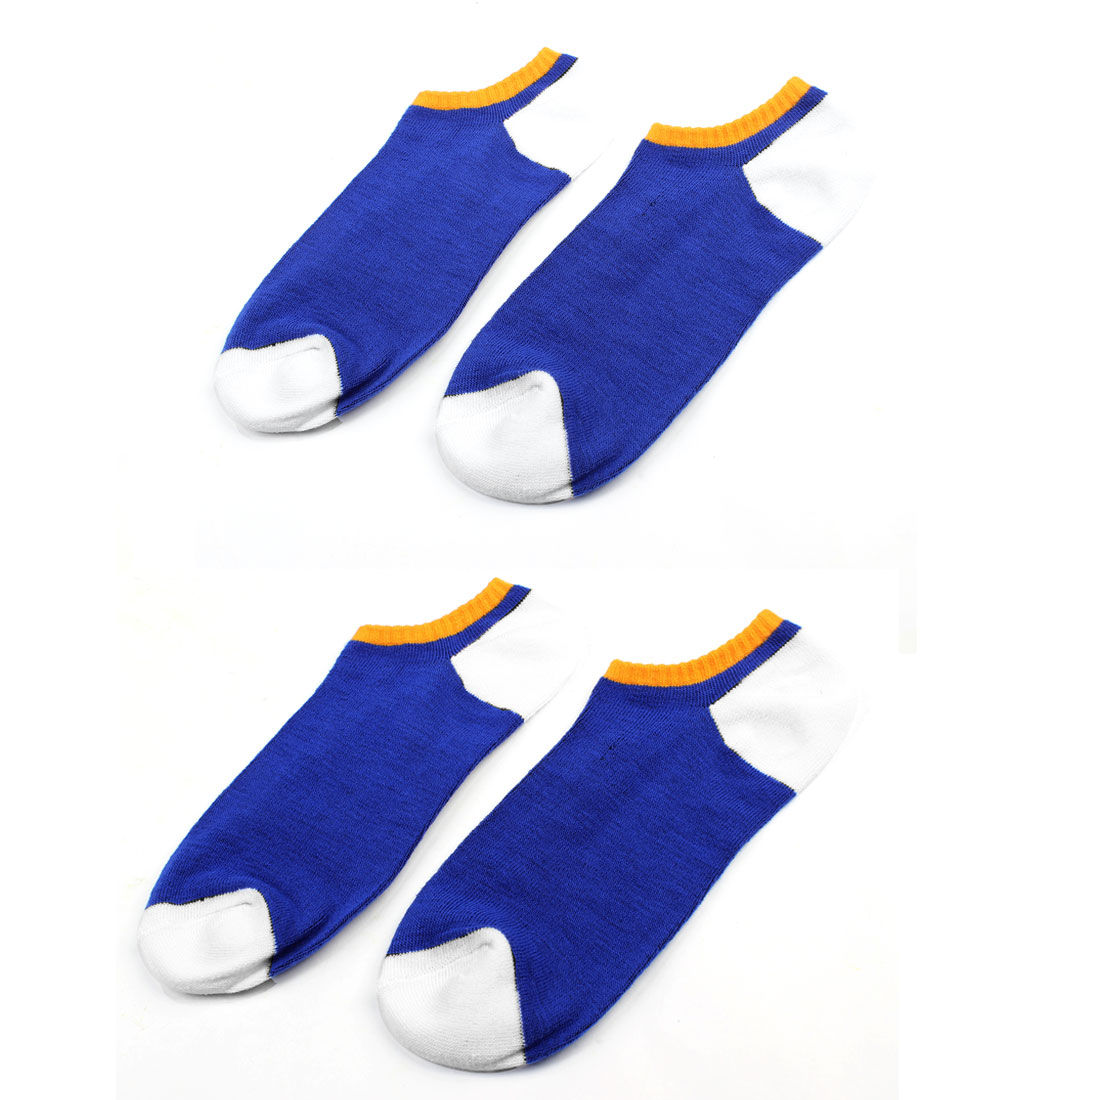 2 Pairs Blue Cotton Blends Elastic Sports Short Cuff Socks for Men